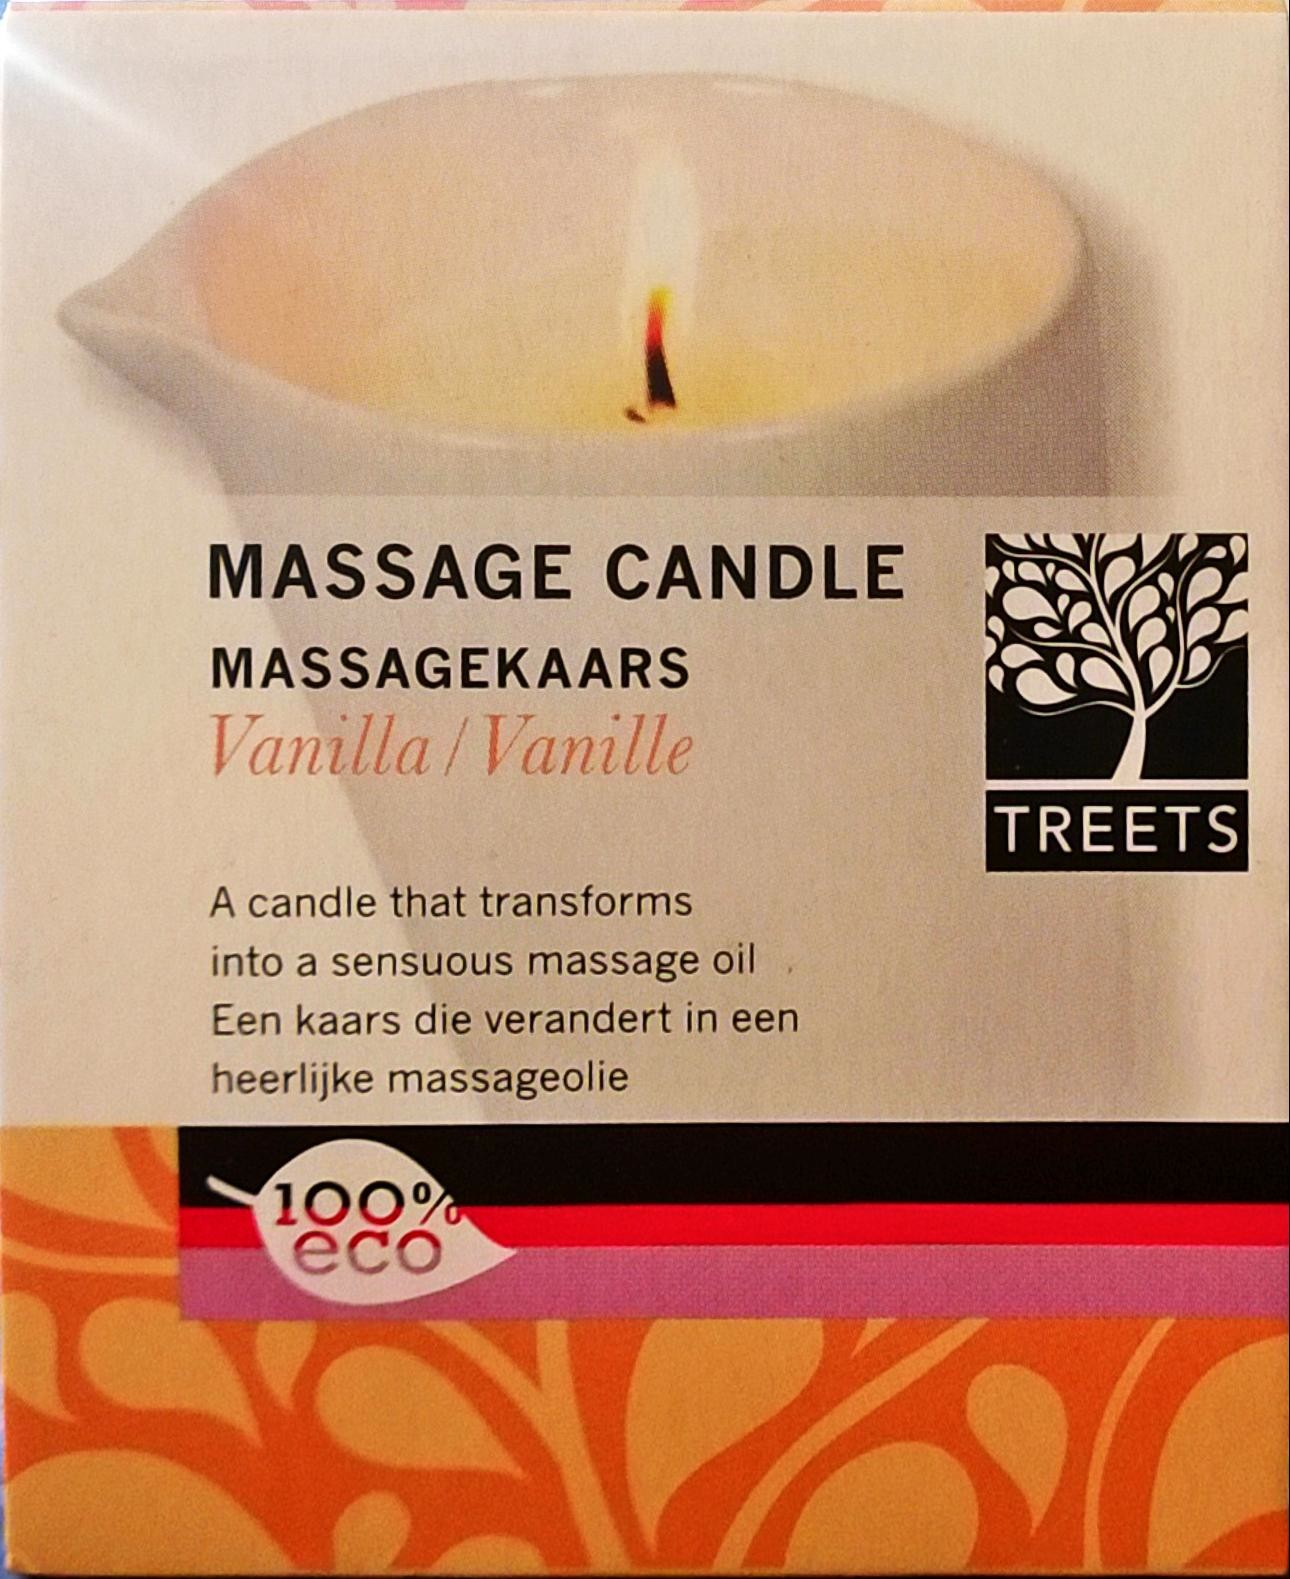 MassageKaars Vanille